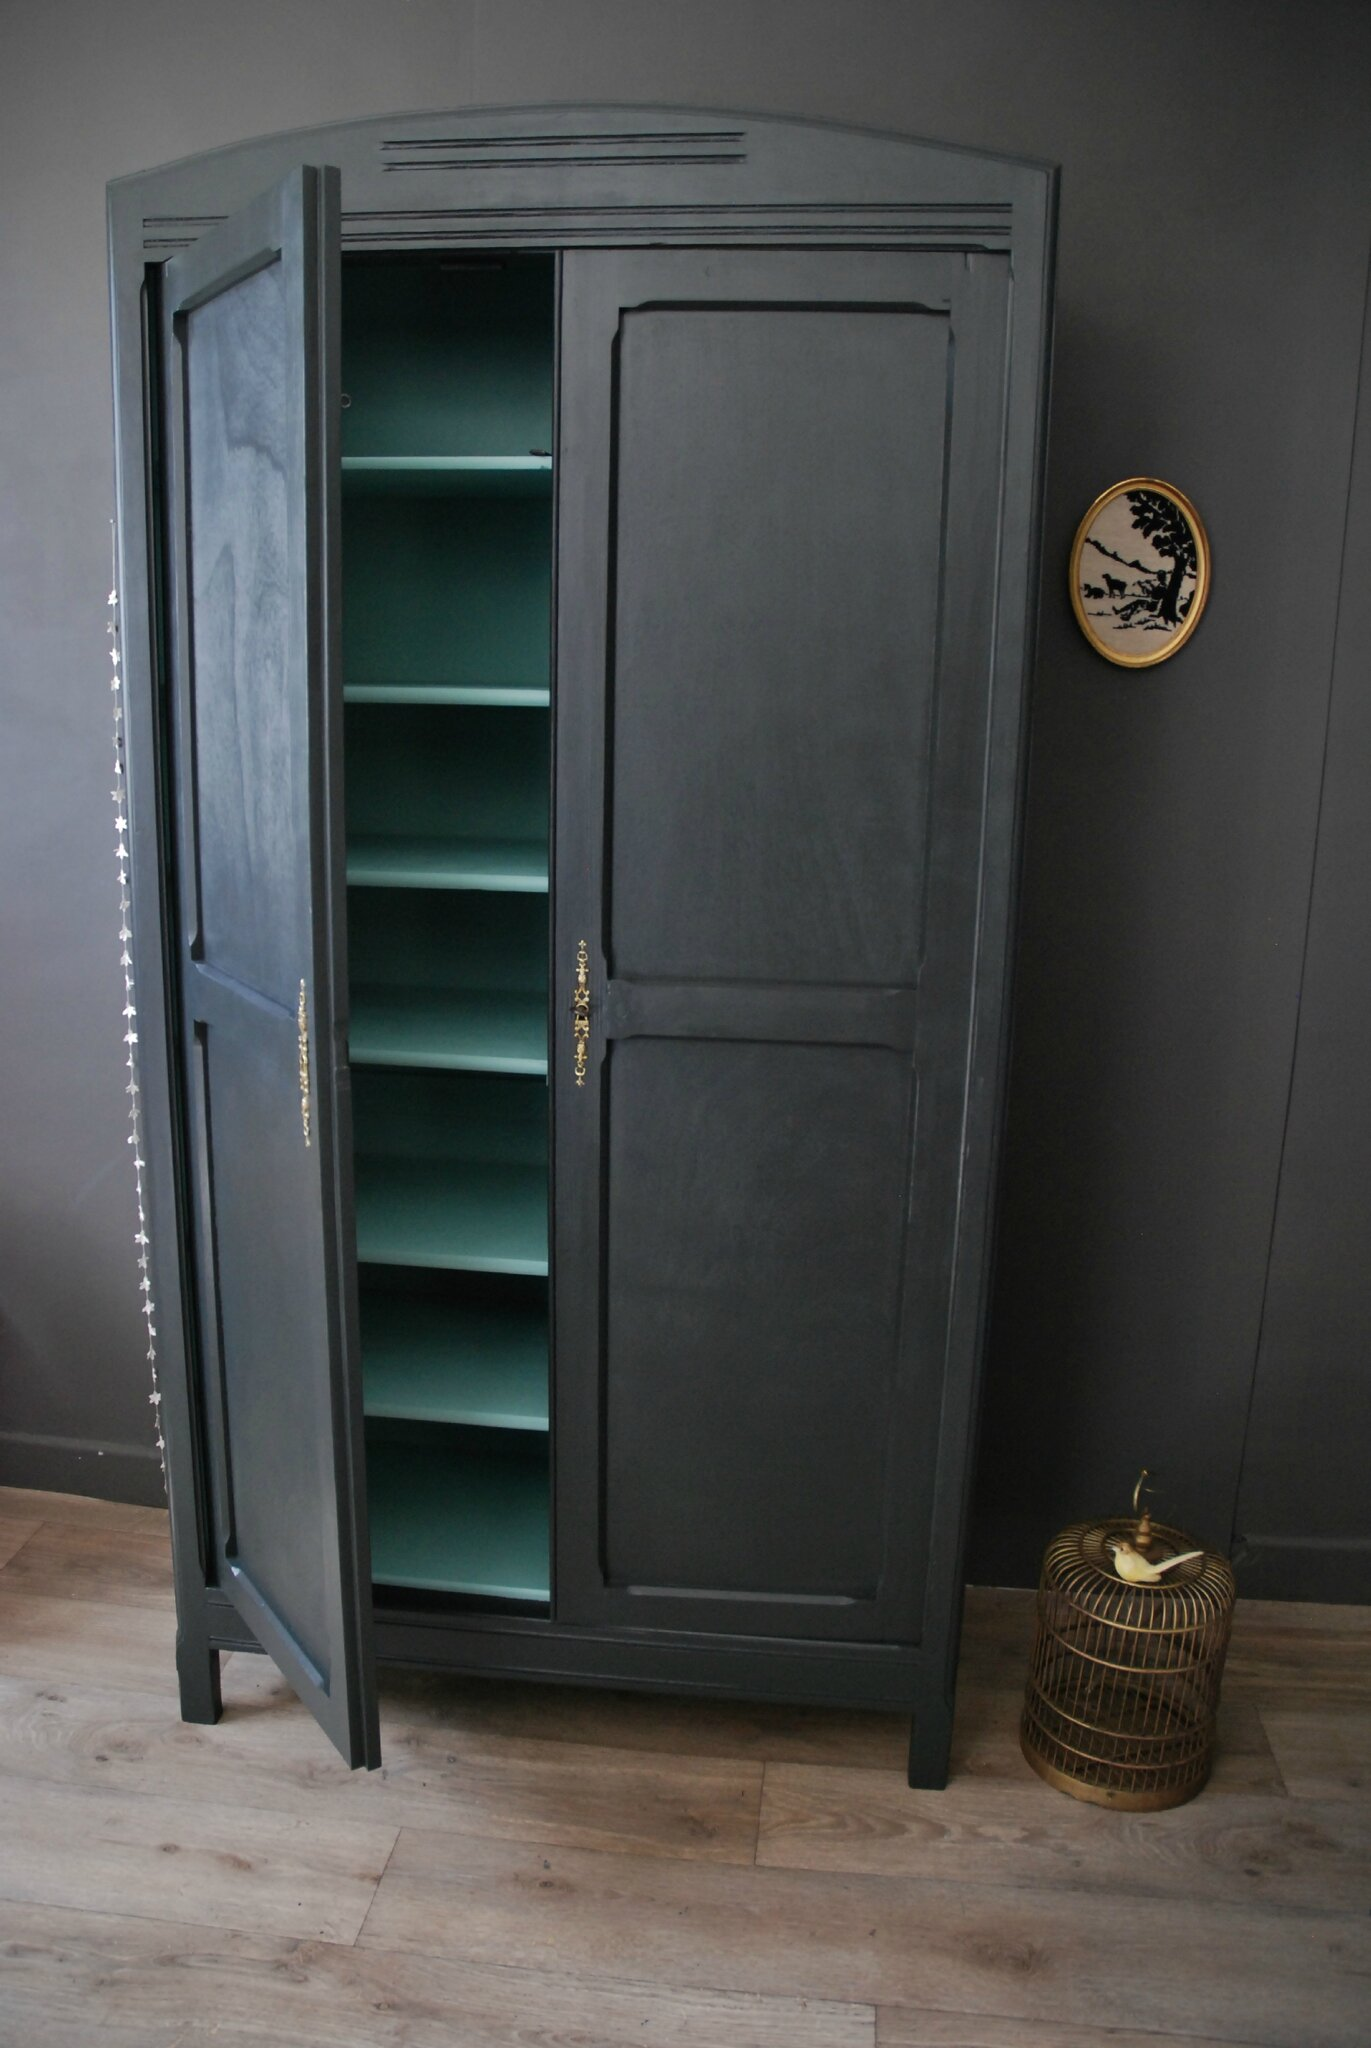 armoire ancienne gris charbon et vert menthe atelier vintage. Black Bedroom Furniture Sets. Home Design Ideas